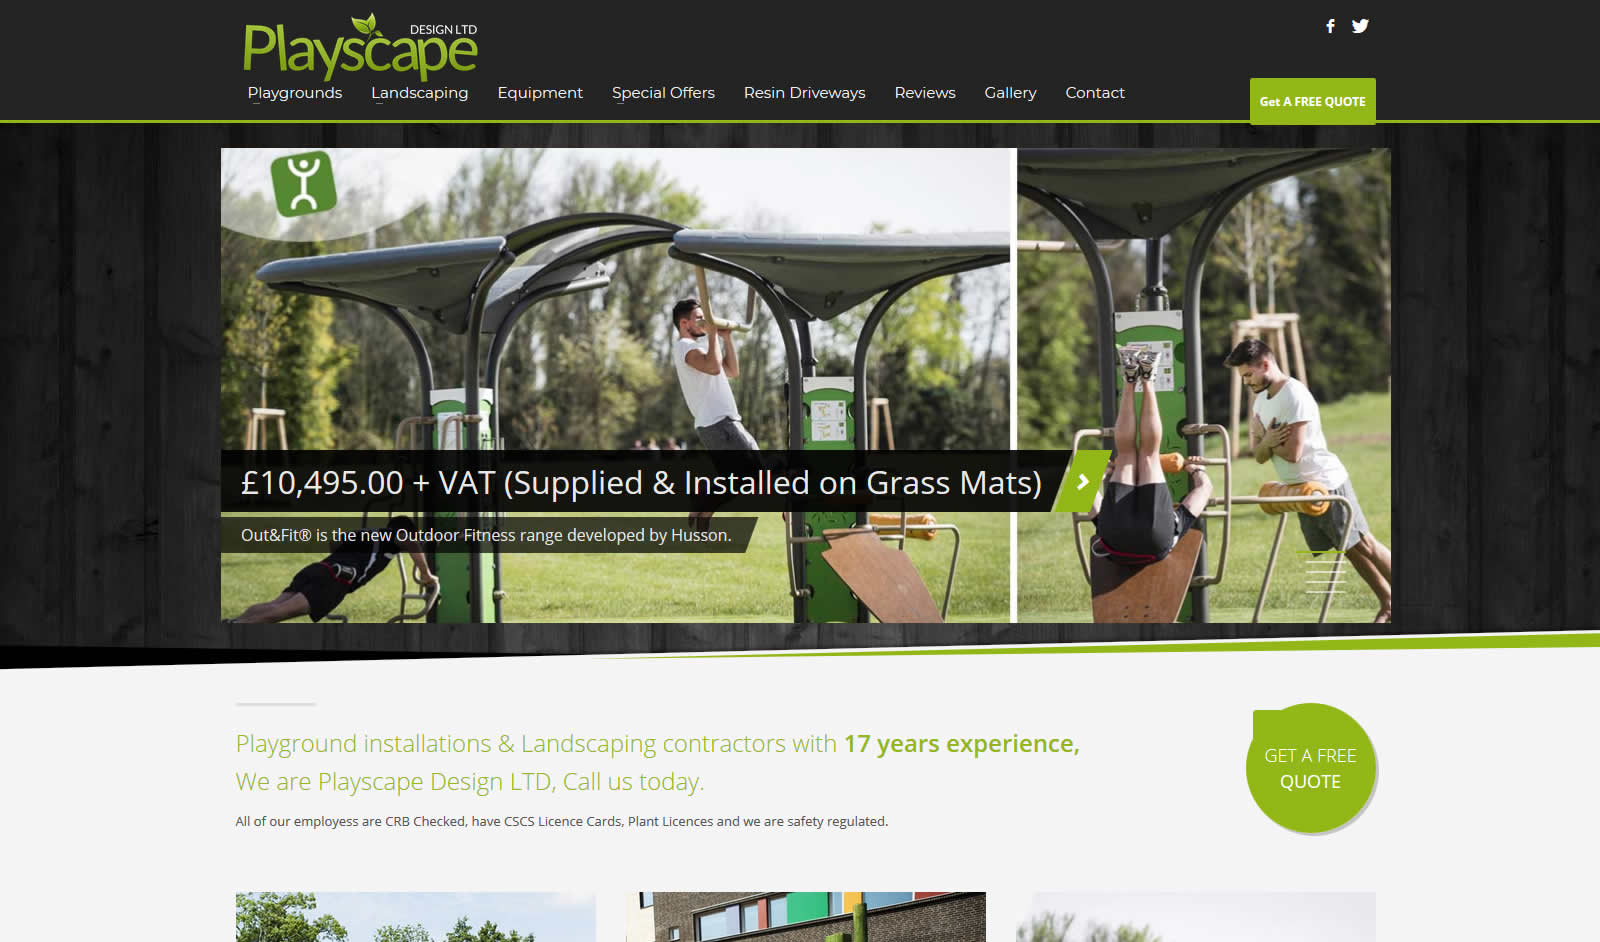 Playscape Design Ltd